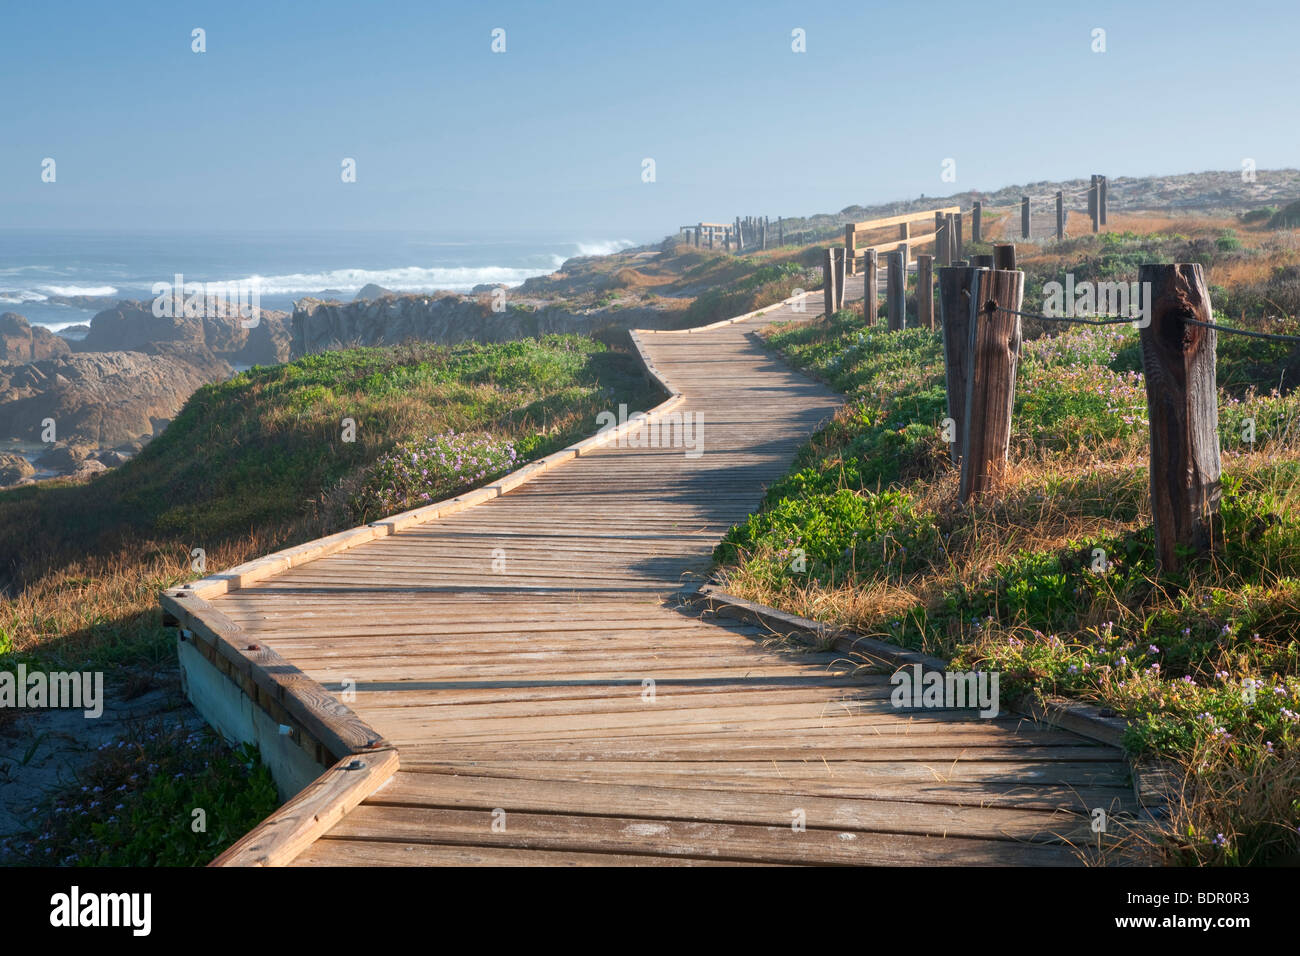 Wooden boardwalk and ocean on 17 Mile Drive. Pebble Beach, California - Stock Image